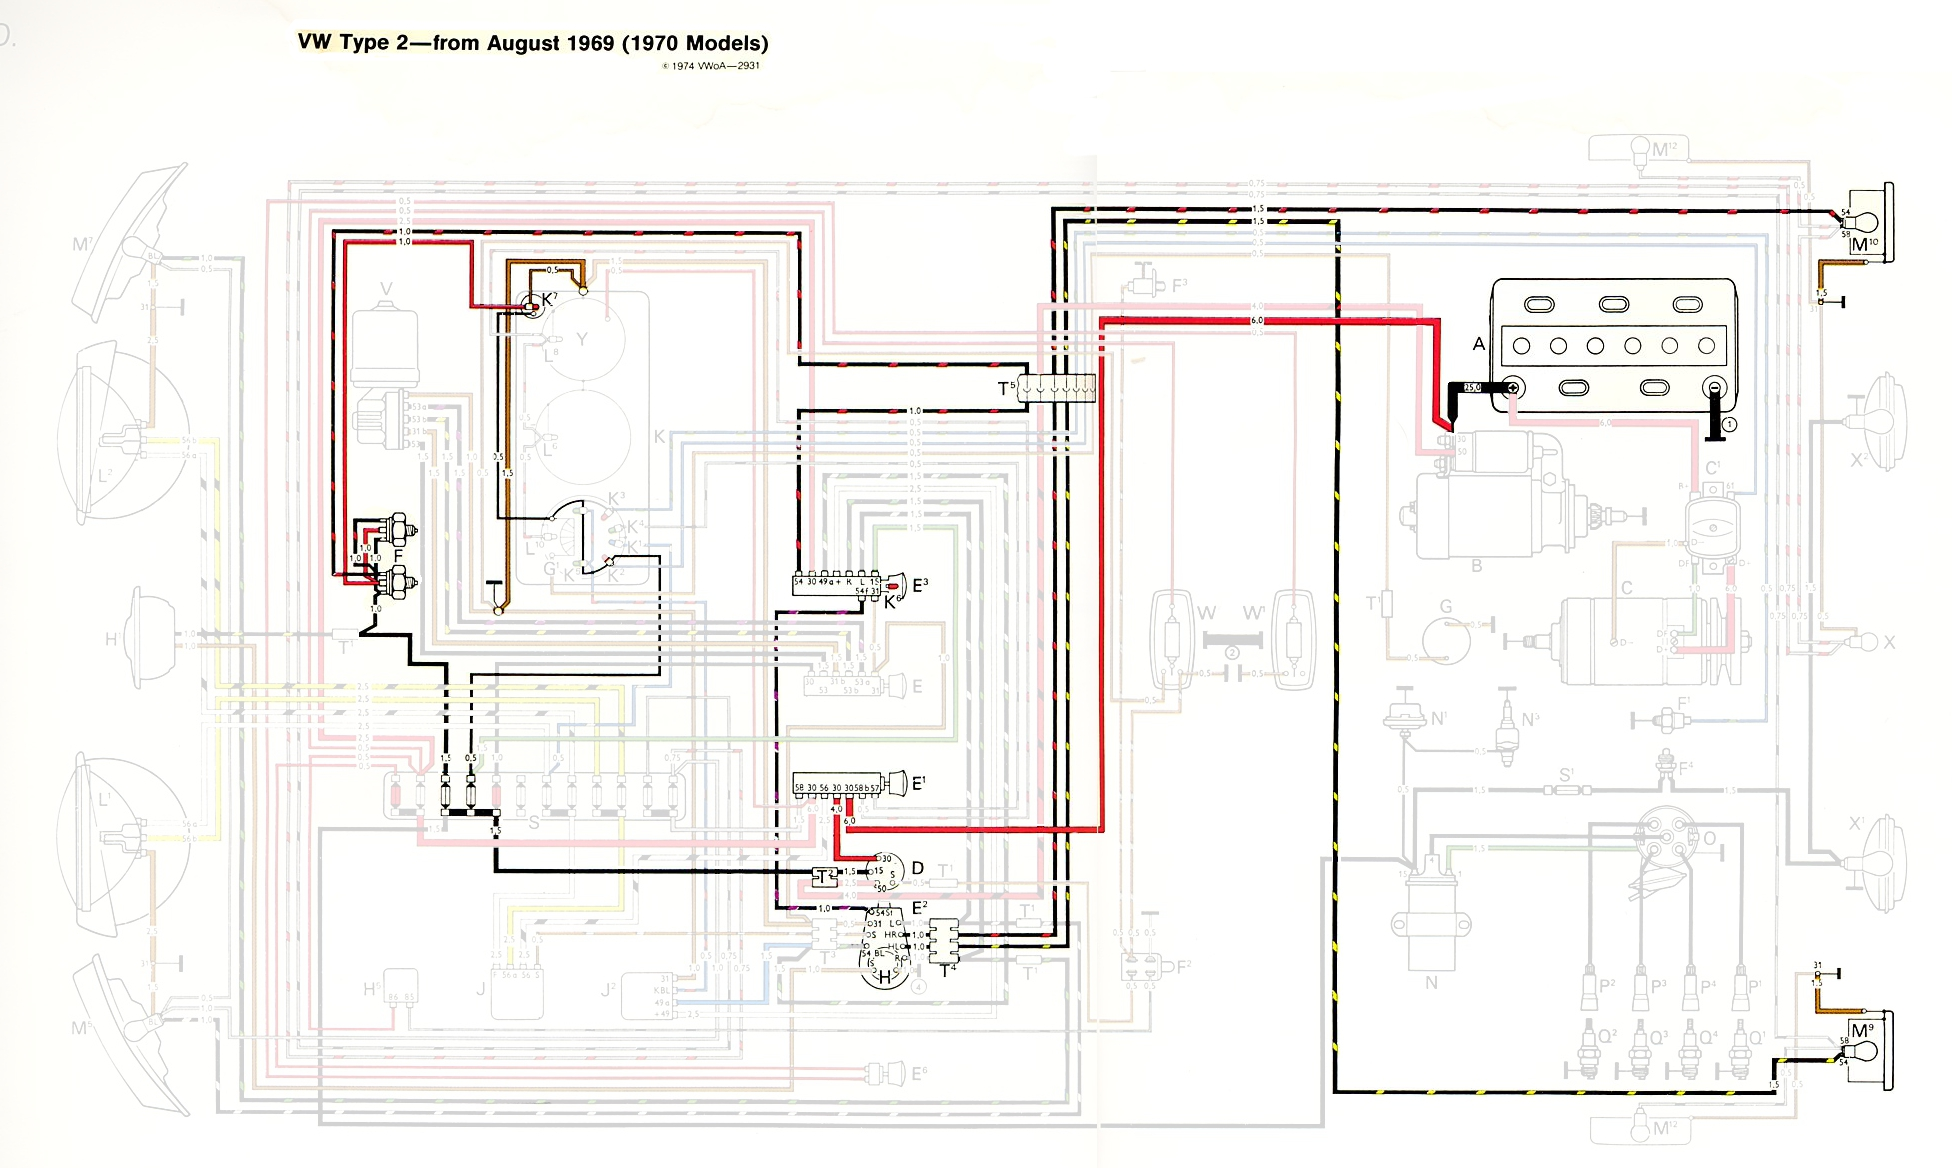 Type 2 Wiring Diagrams 69 Volkswagen Diagram